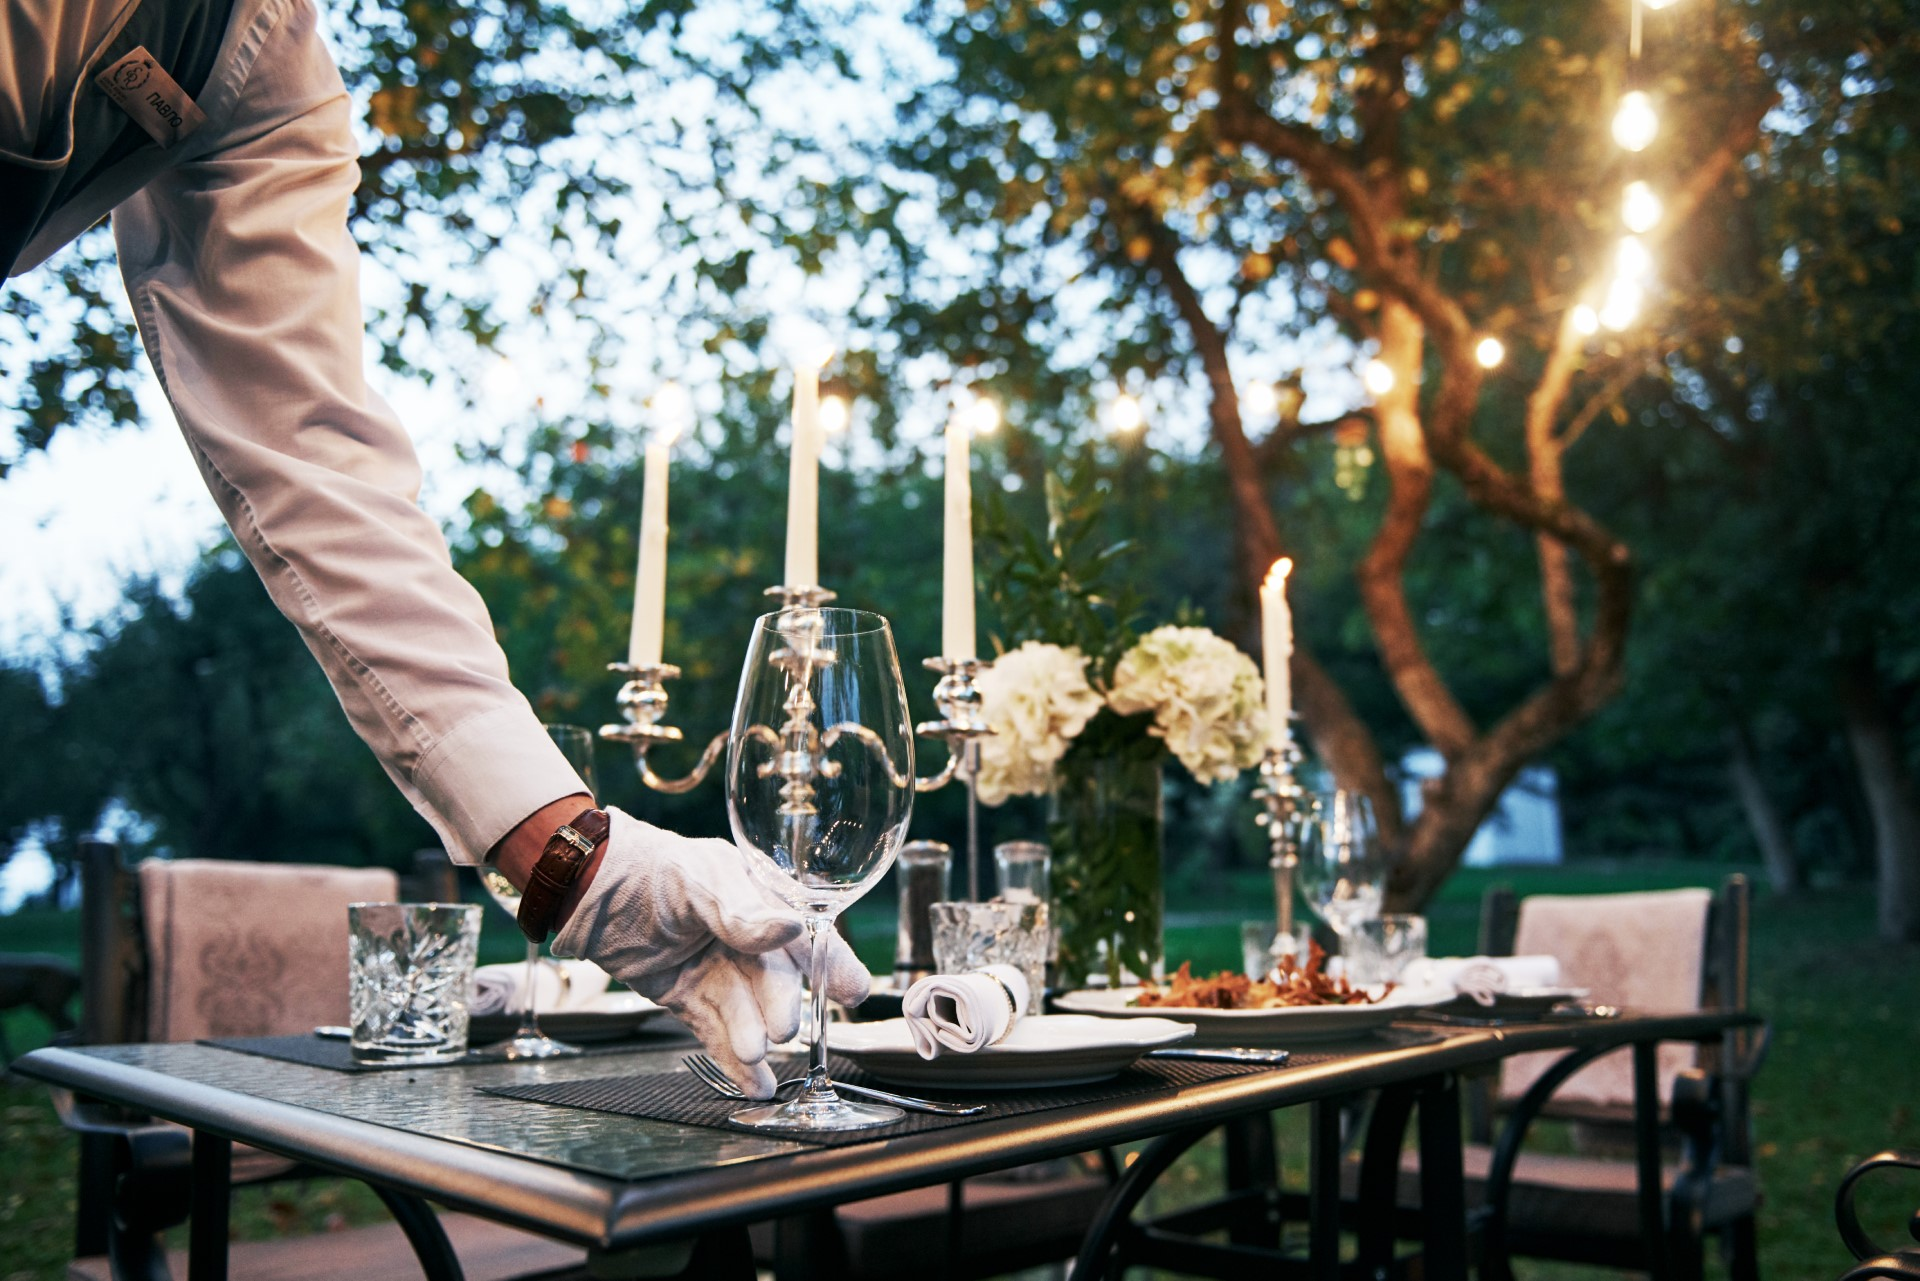 waiter with white gloves preparing a table for dinner in a garden